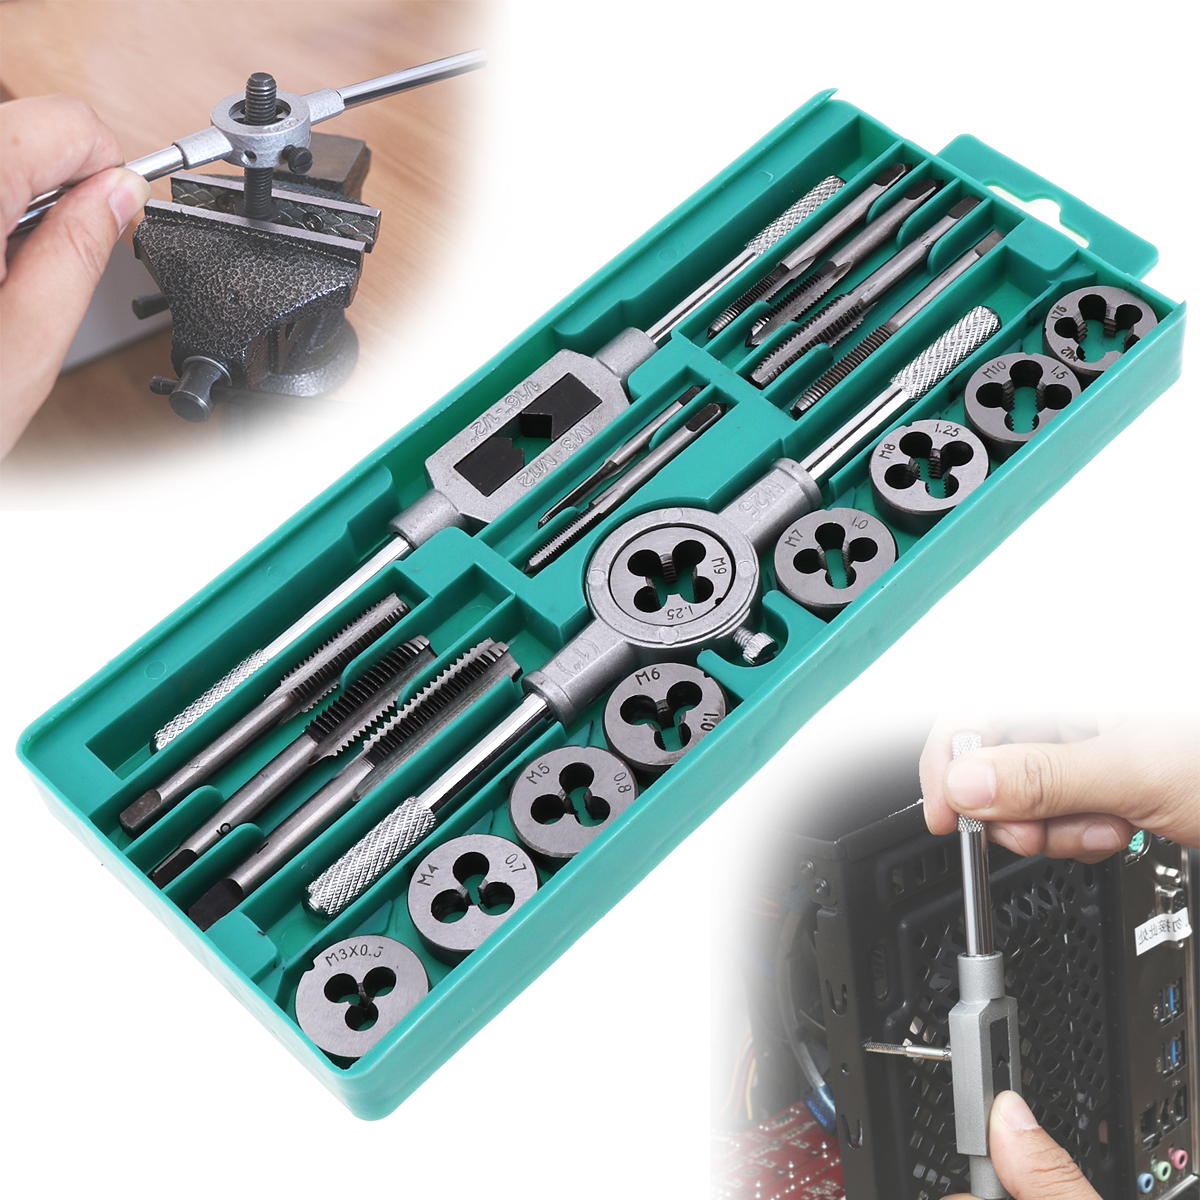 20pcs Tap & Die Set 1/16-1/2 Inch NC Screw Thread Plugs Taps Alloy Steel Hand Screw Taps Dies freeshipping mini taps dies metric set m1 m2 5 screw thread plugs taps hss screw taps with tap wrench hand tools 30pcs